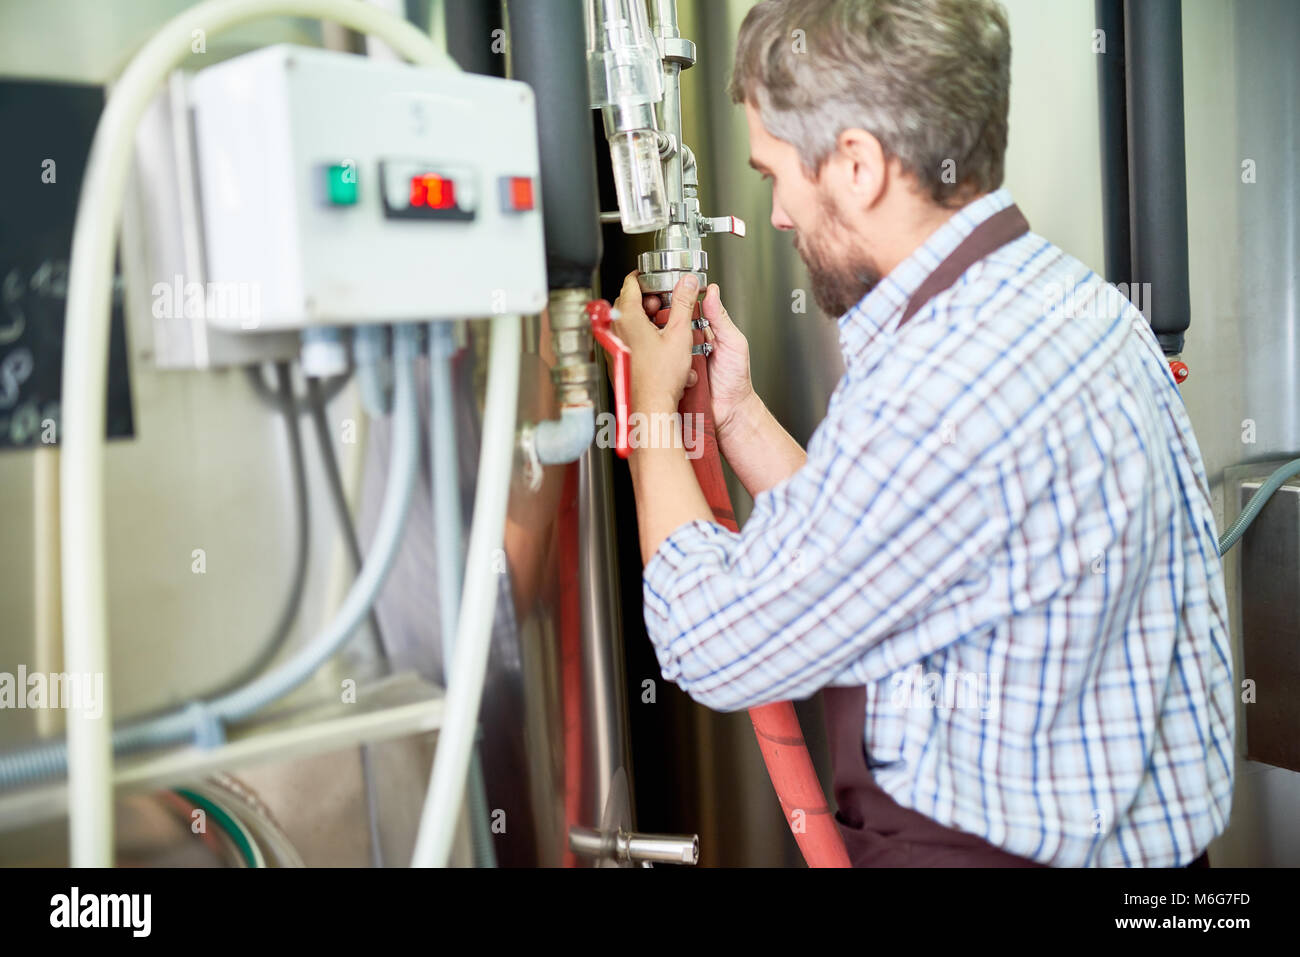 Bearded Technician Adjusting Equipment - Stock Image